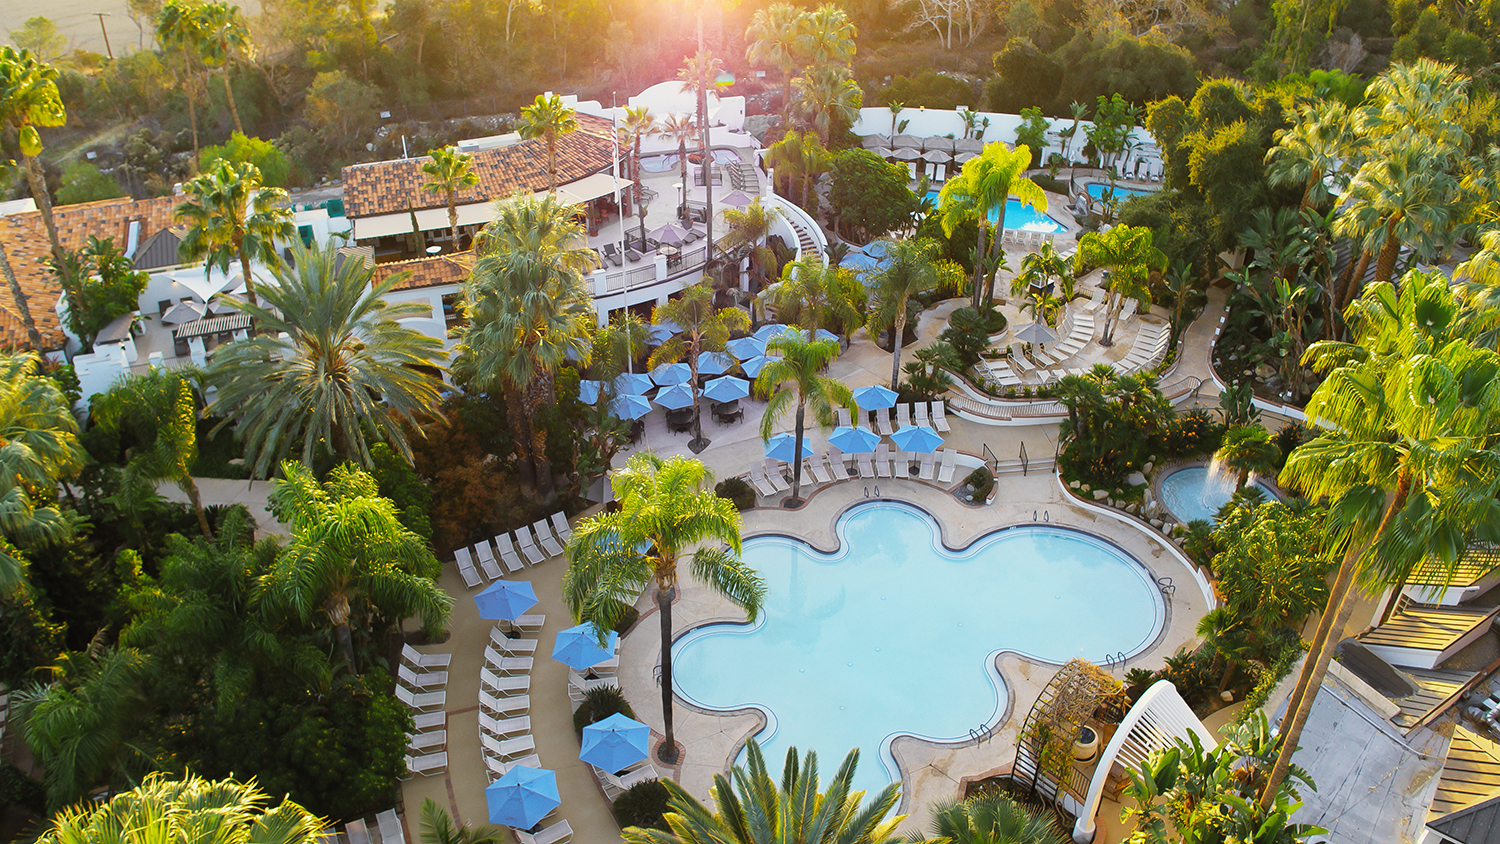 Glen Ivy Hot Springs has a total of 19 different types of pools.